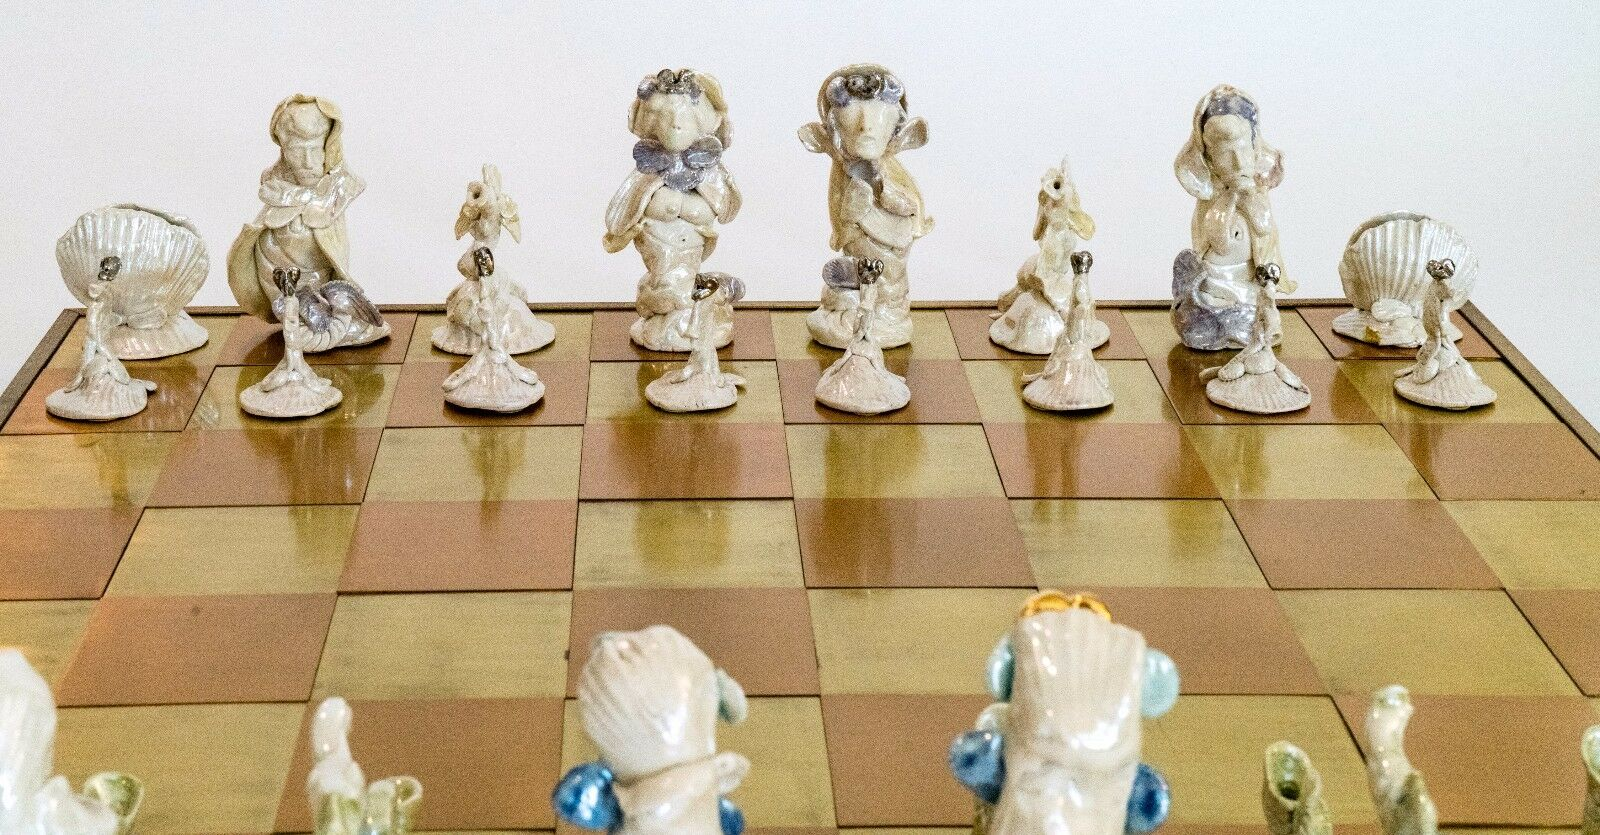 Hand Sculpted Ceramic Chess Set - 32 pieces + + + Brass Copper Board (One of a kind) f14c1a